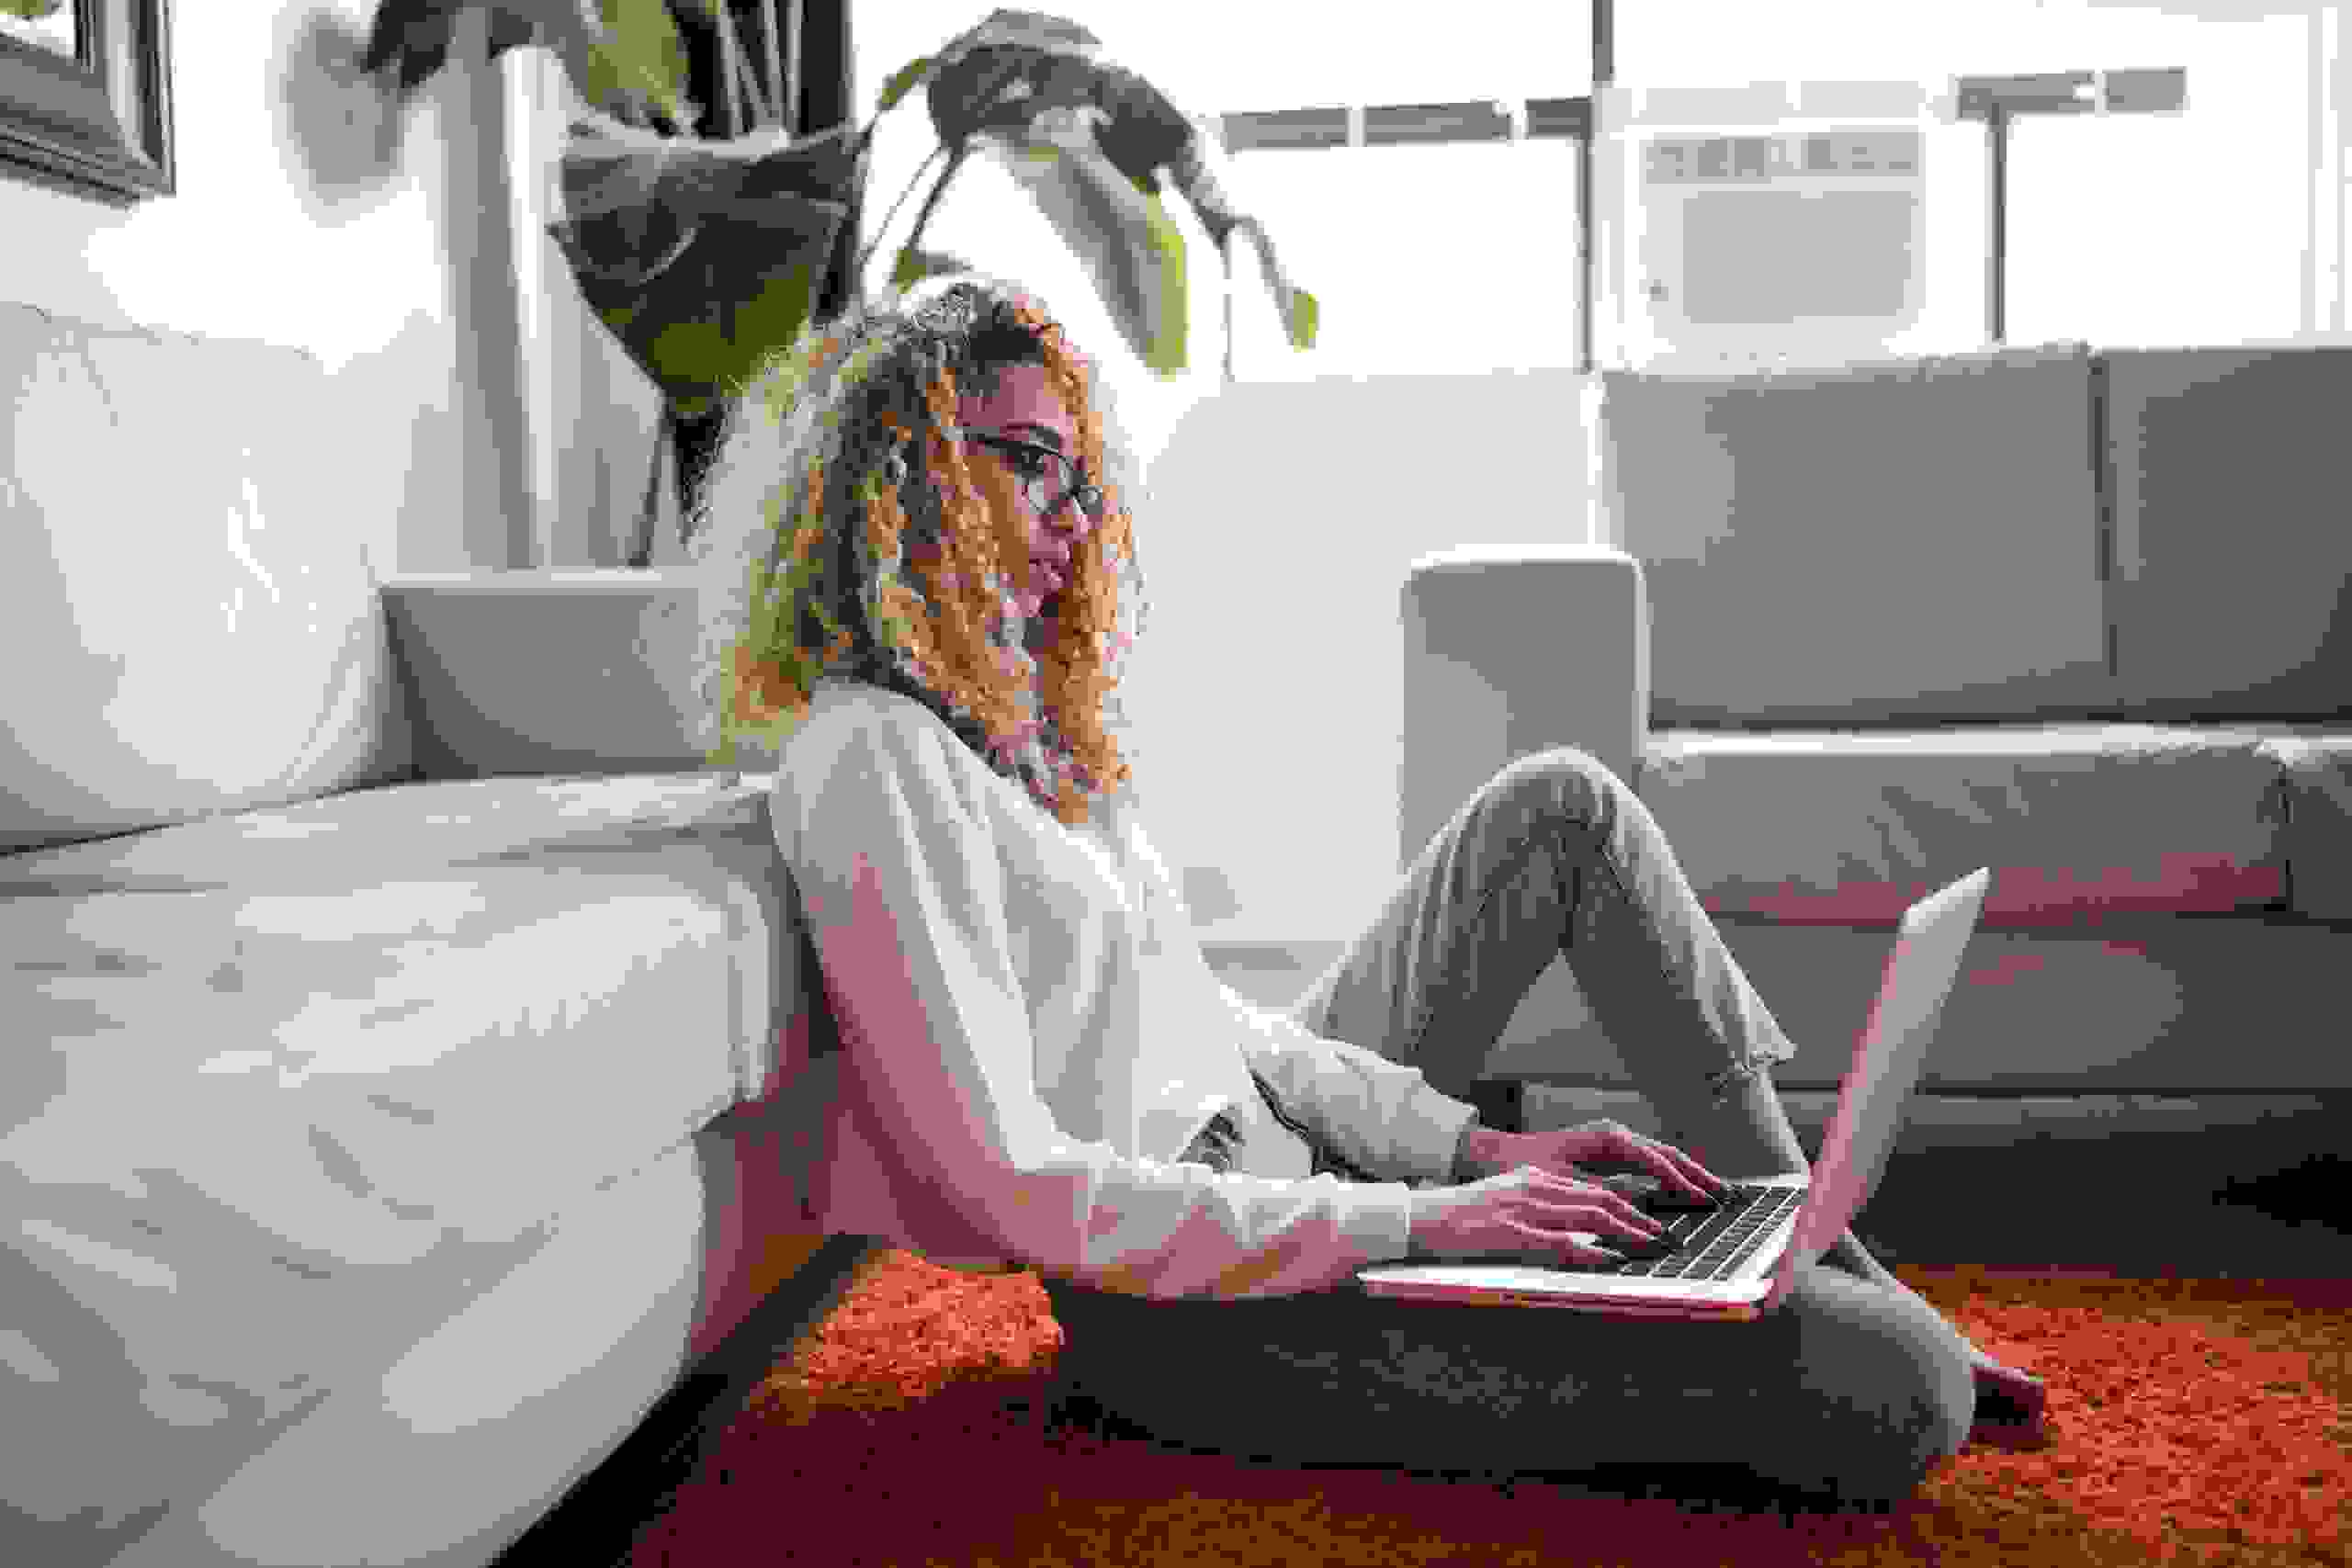 Young woman with curly hair sitting on the floor typing on her laptop.